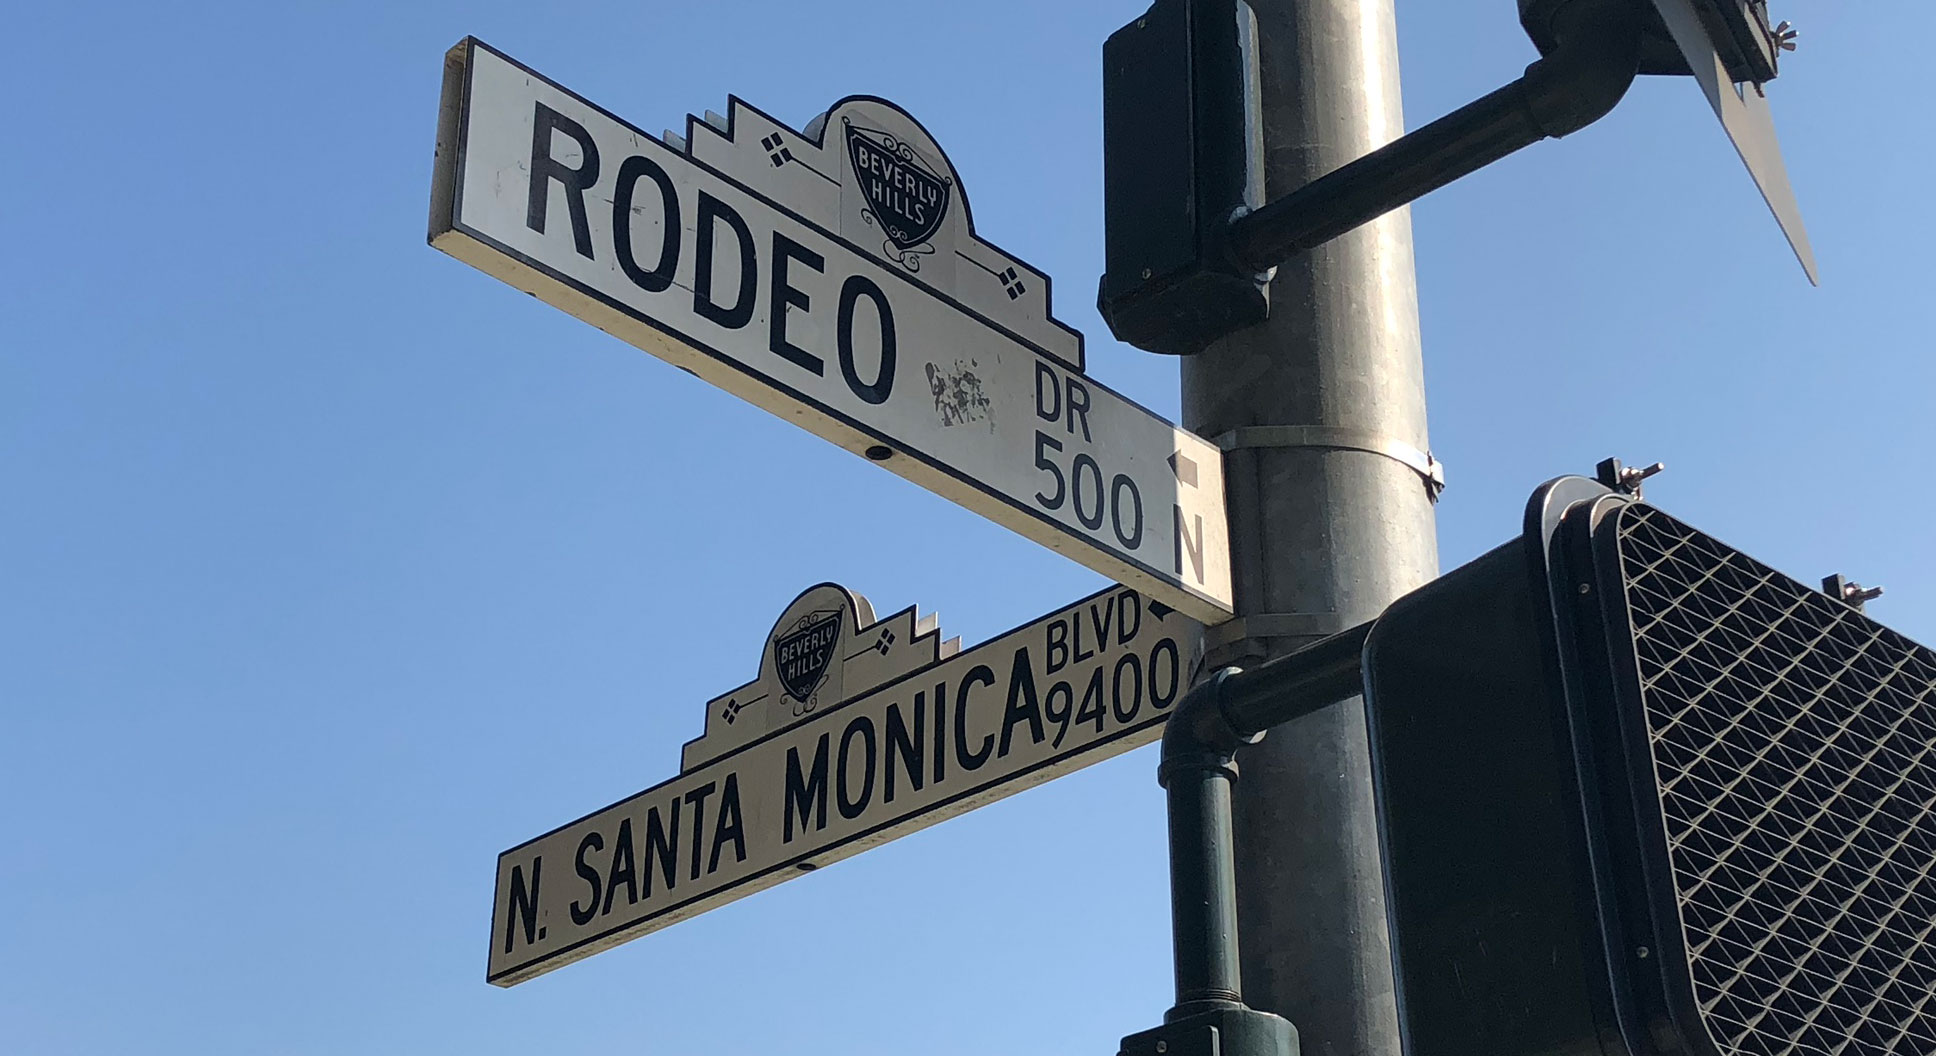 Junction sign Rodeo Drive and Santa Monica Boulevard - Sunrise and Echos of Sheryl Crow!